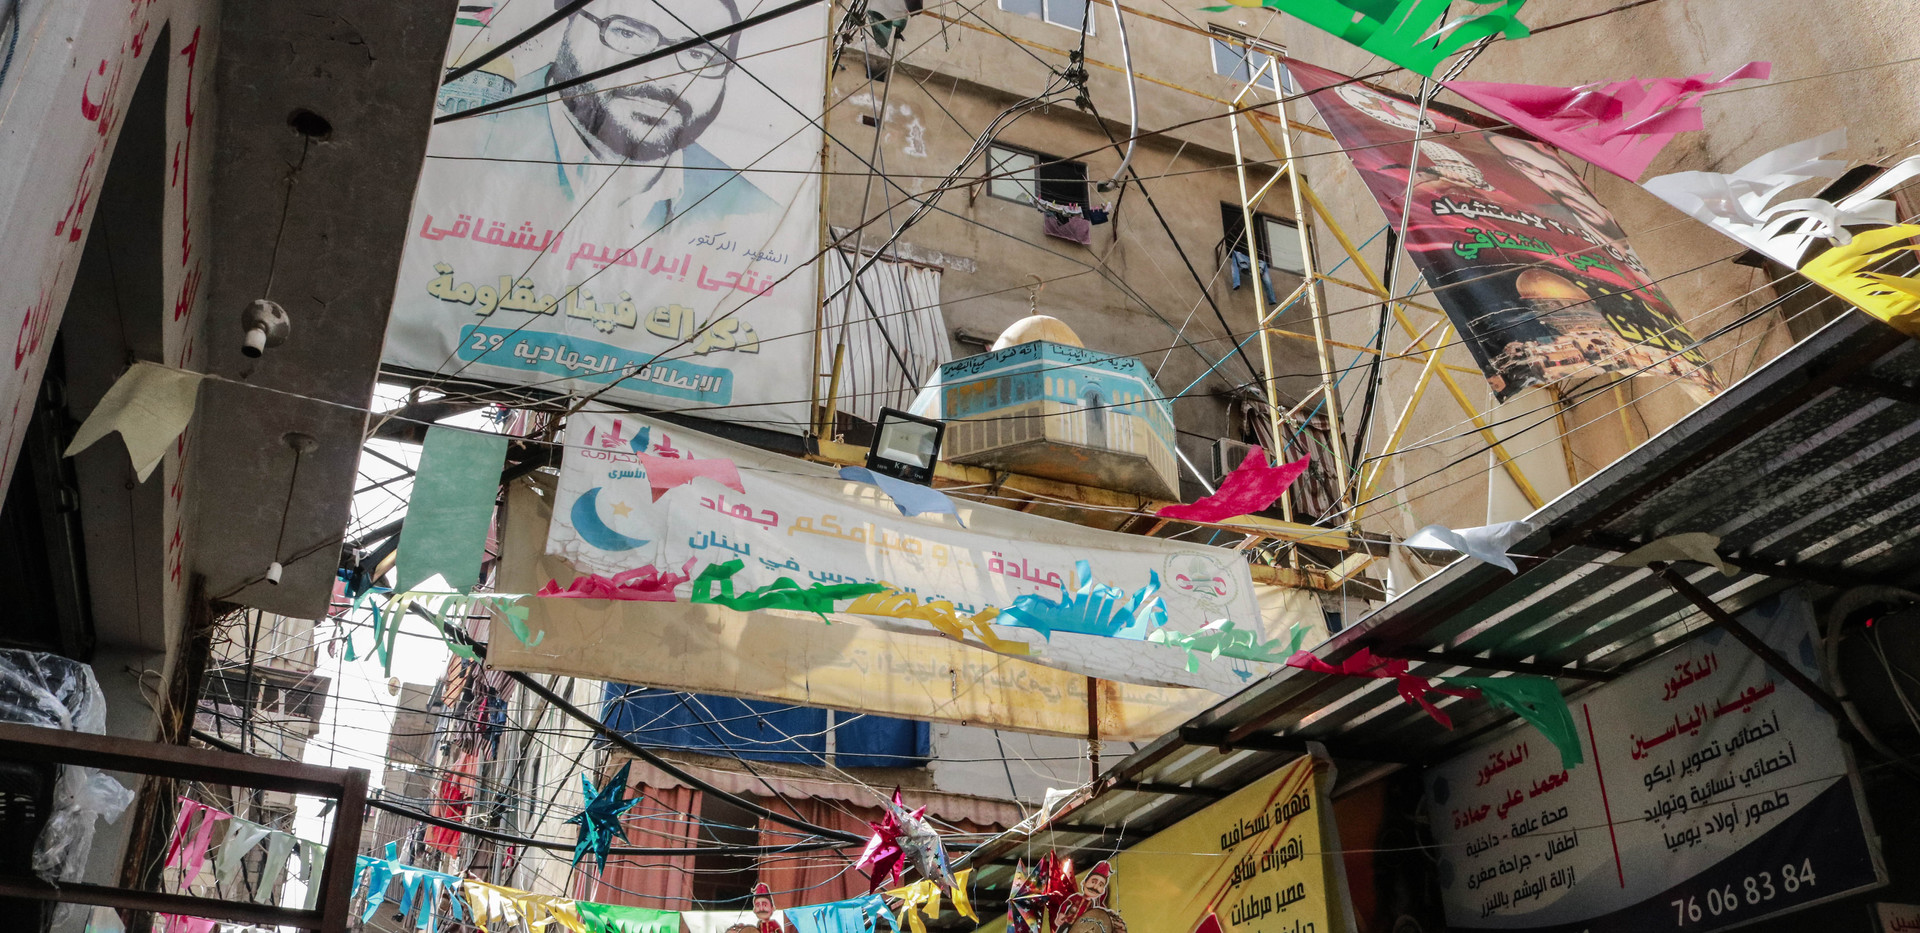 Graffiti, slogans and posters with political connotations can be found everywhere. During the Ramadan,  colored lines between the eaves lightened up Ramadan's atmosphere in Shatila.